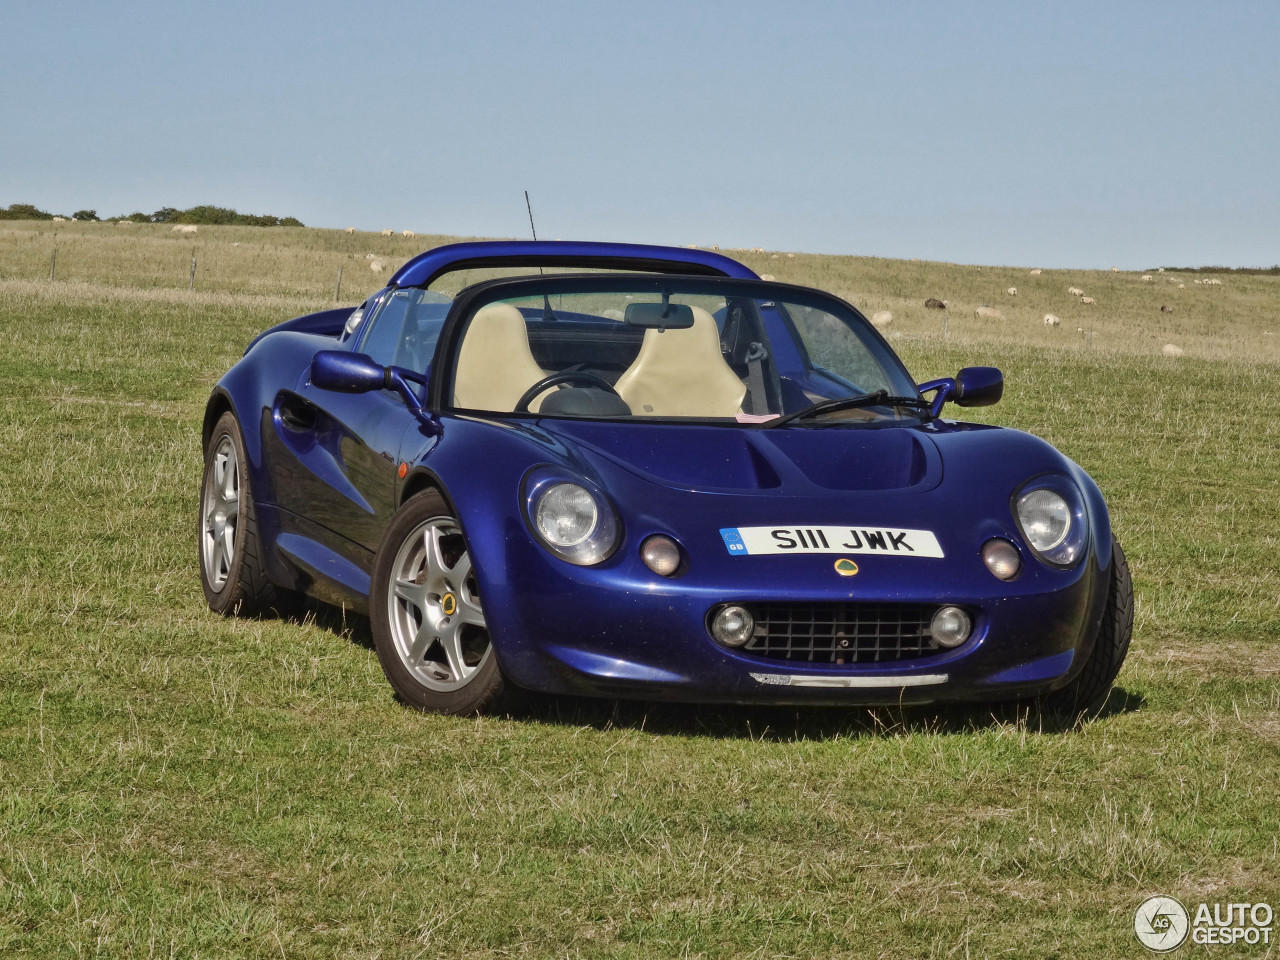 lotus elise s1 111s 20 july 2015 autogespot. Black Bedroom Furniture Sets. Home Design Ideas